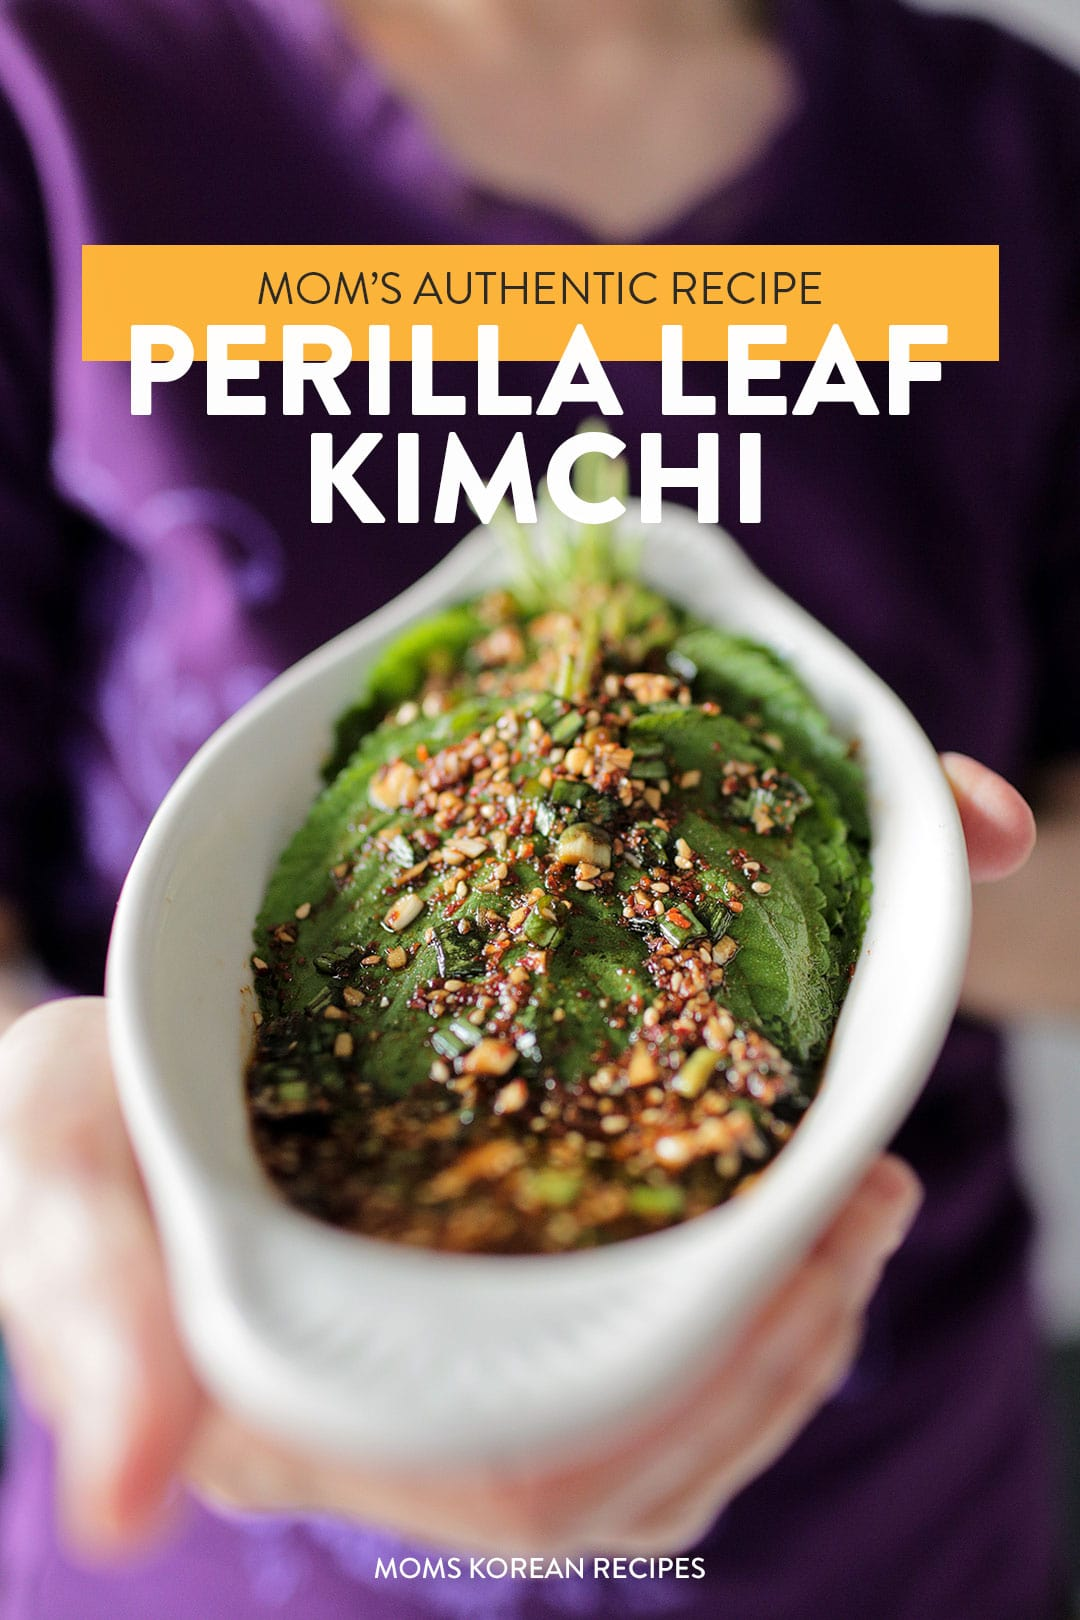 How to Make Mom's Authentic Korean Perilla Leaves Recipe